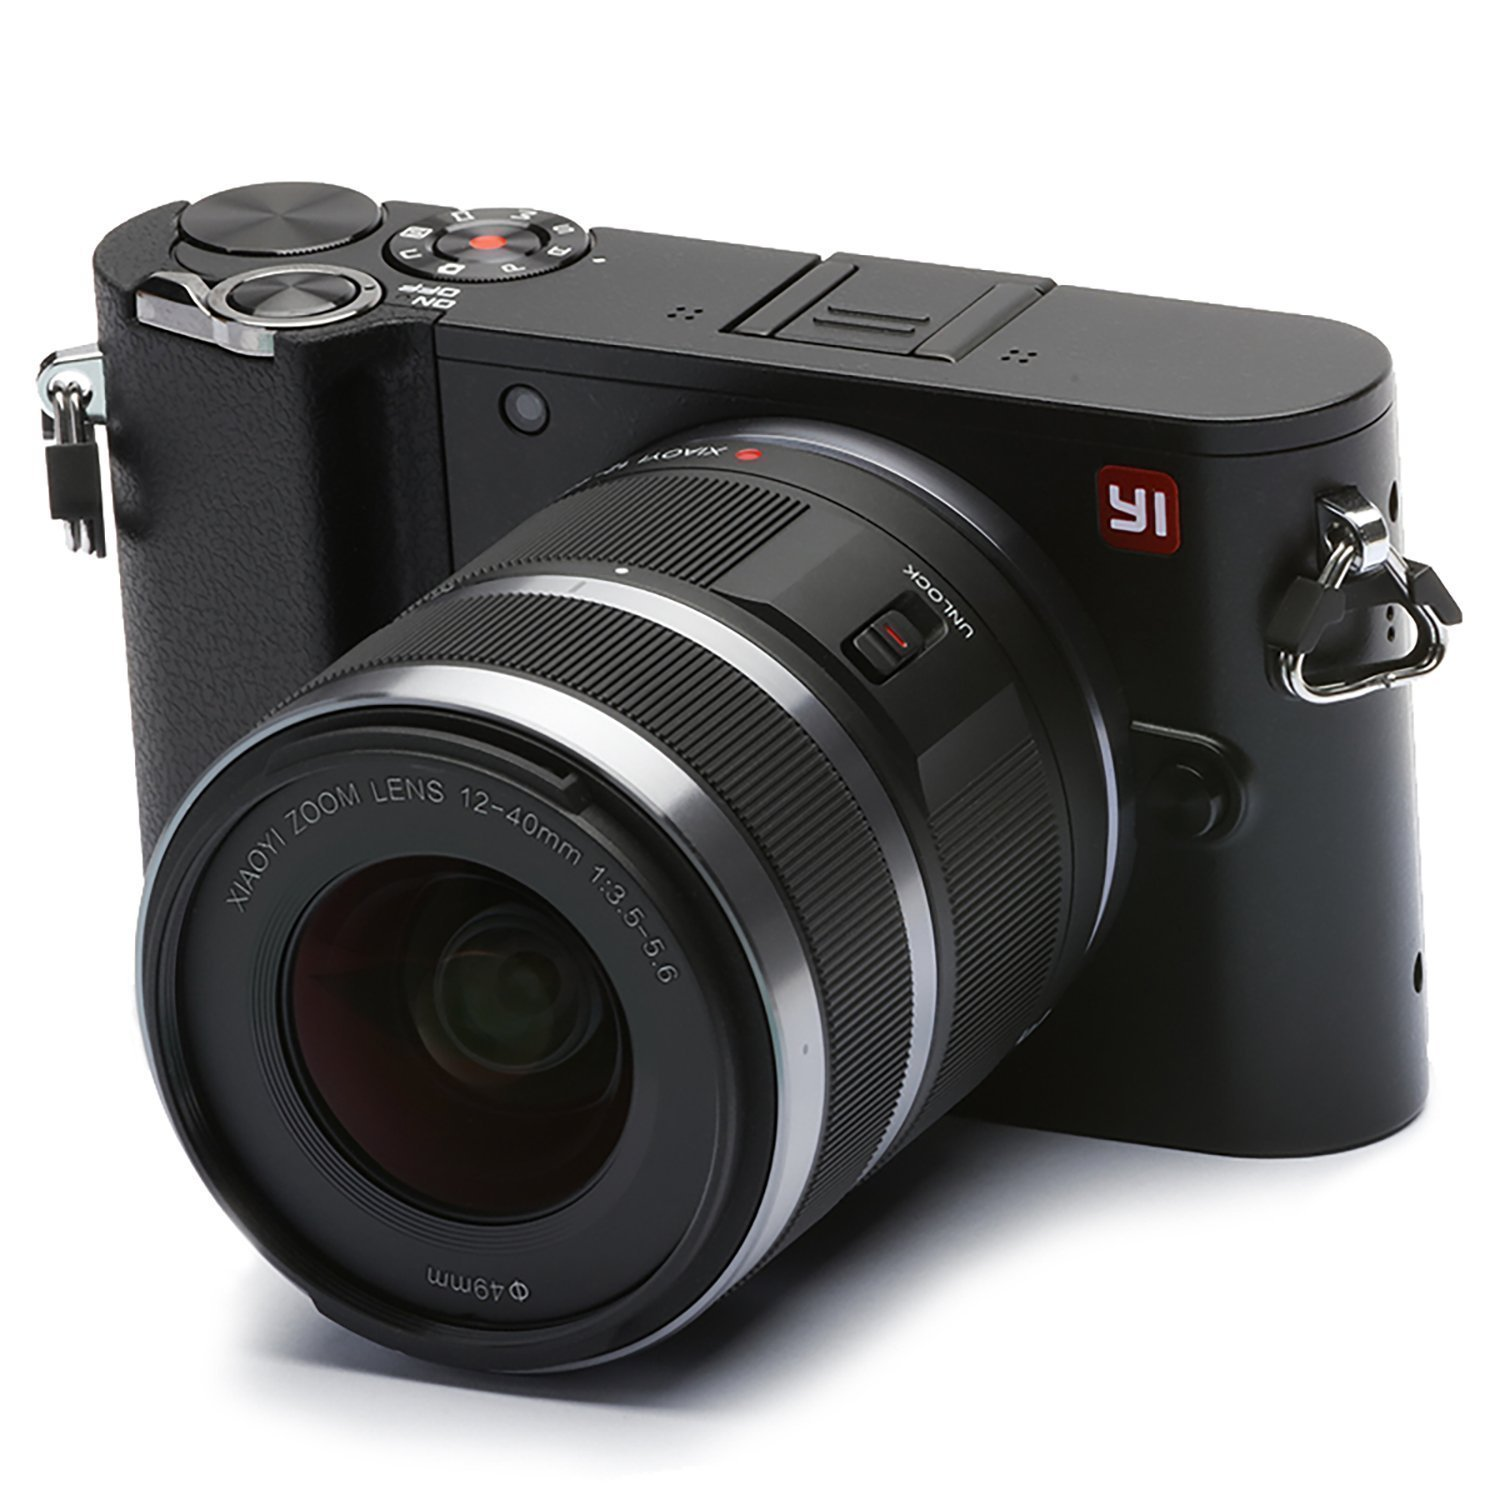 🔥 Black Friday : Yi M1, l'appareil photo hybride chinois à seulement 255 euros sur Amazon France